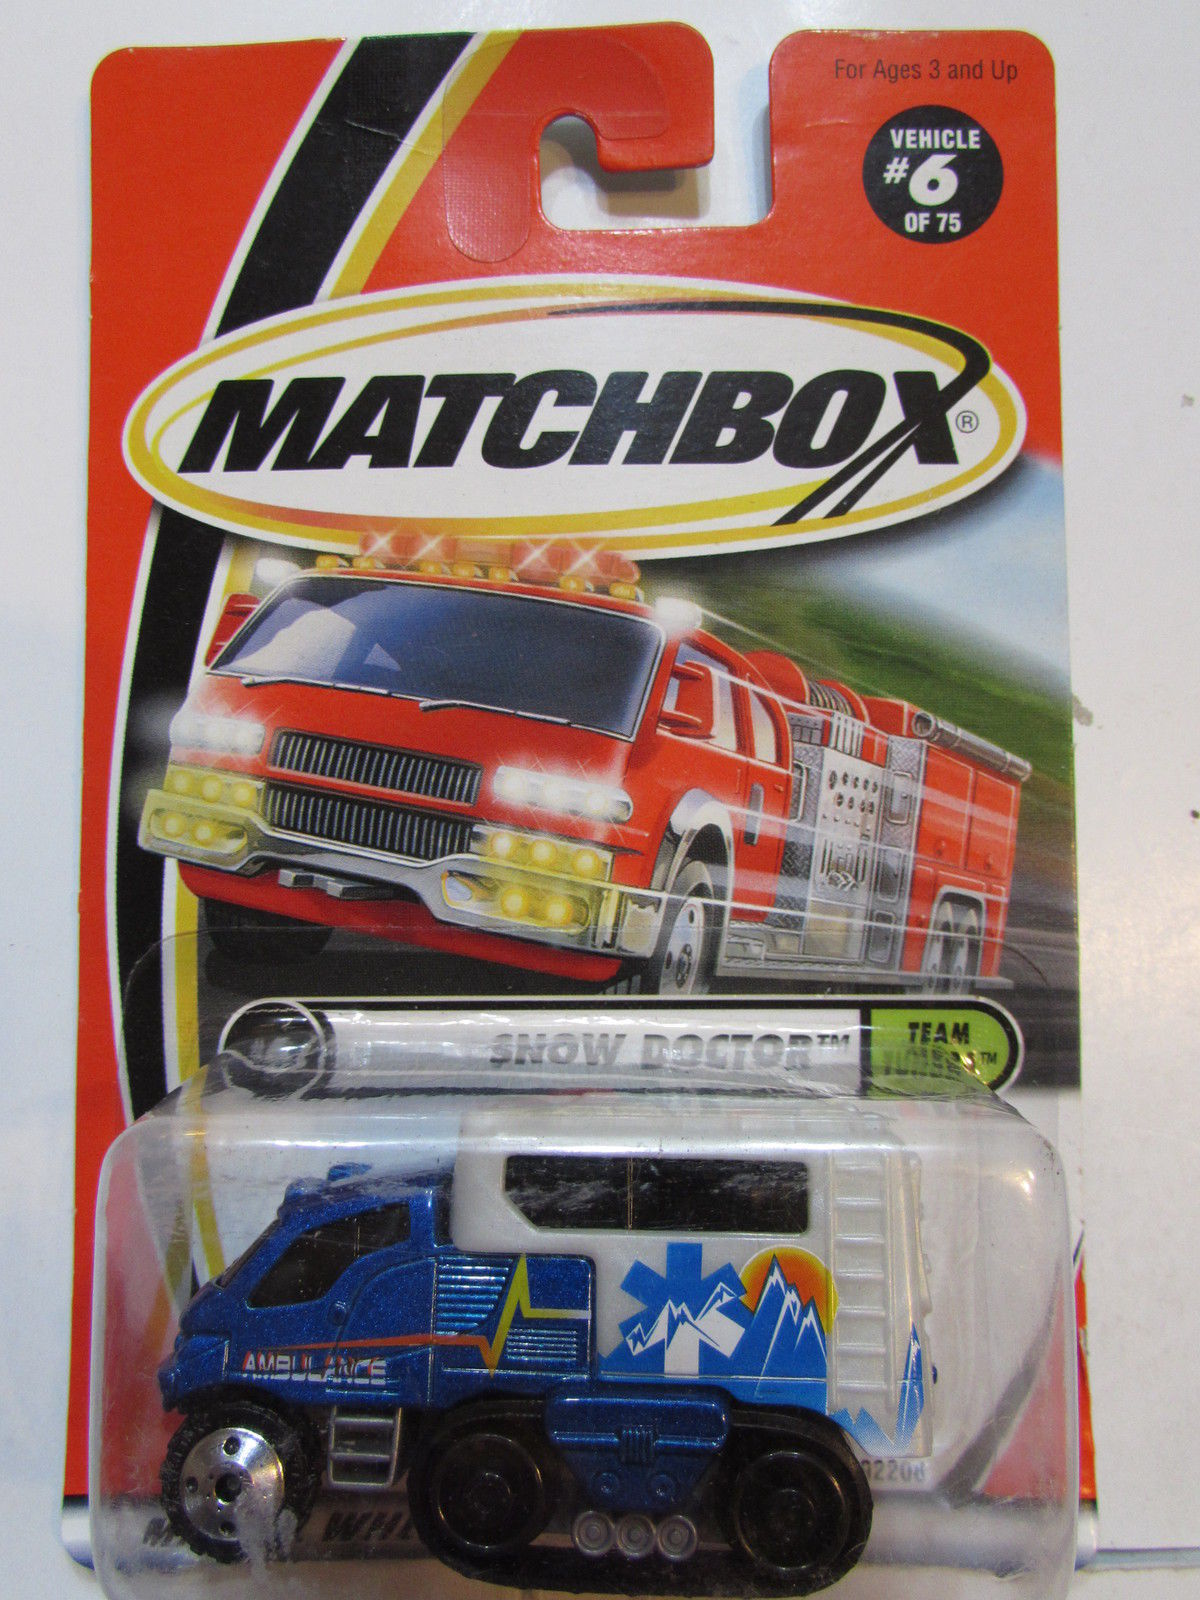 MATCHBOX 2001 #6 OF 75 SNOW DOCTOR - TEAM TUNDRA BLUE